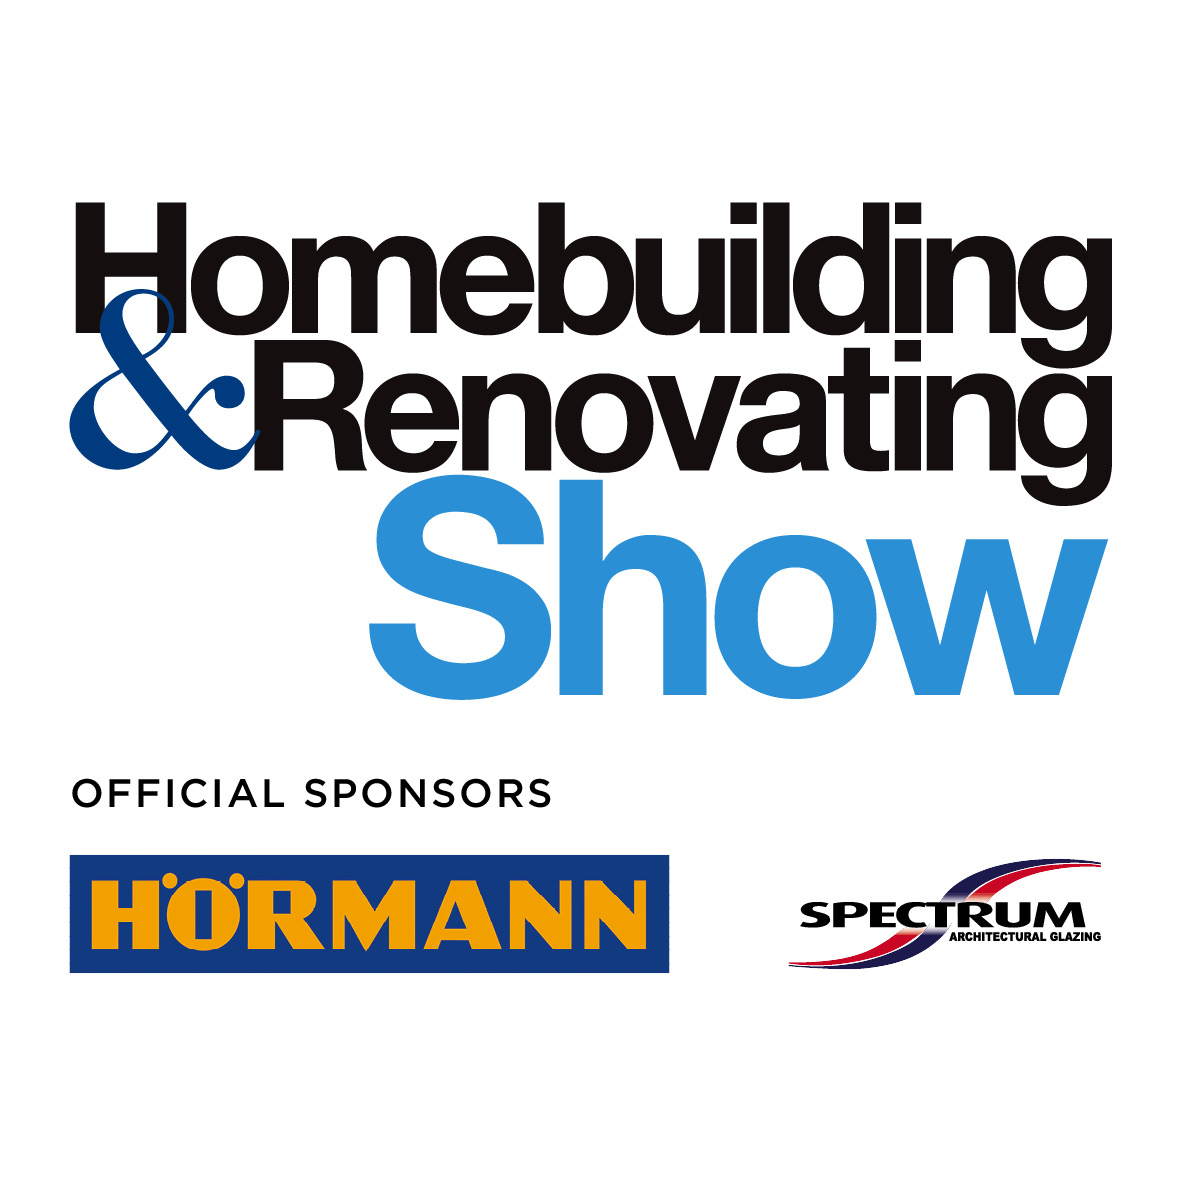 NEC Show 2019 - Our partner Jo Dyson has been invited to the NEC National show as a guest speaker and expert on the Advice Centre. The show welcomes over 30,000 people over the four days and is a great source of inspiration and help for would-be home renovators. Running from 28-31 March 2019.If you'd like to visit the show free of charge as a friend of Mae House Design, please follow this link: https://www.homebuildingshow.co.uk/maehousedesign